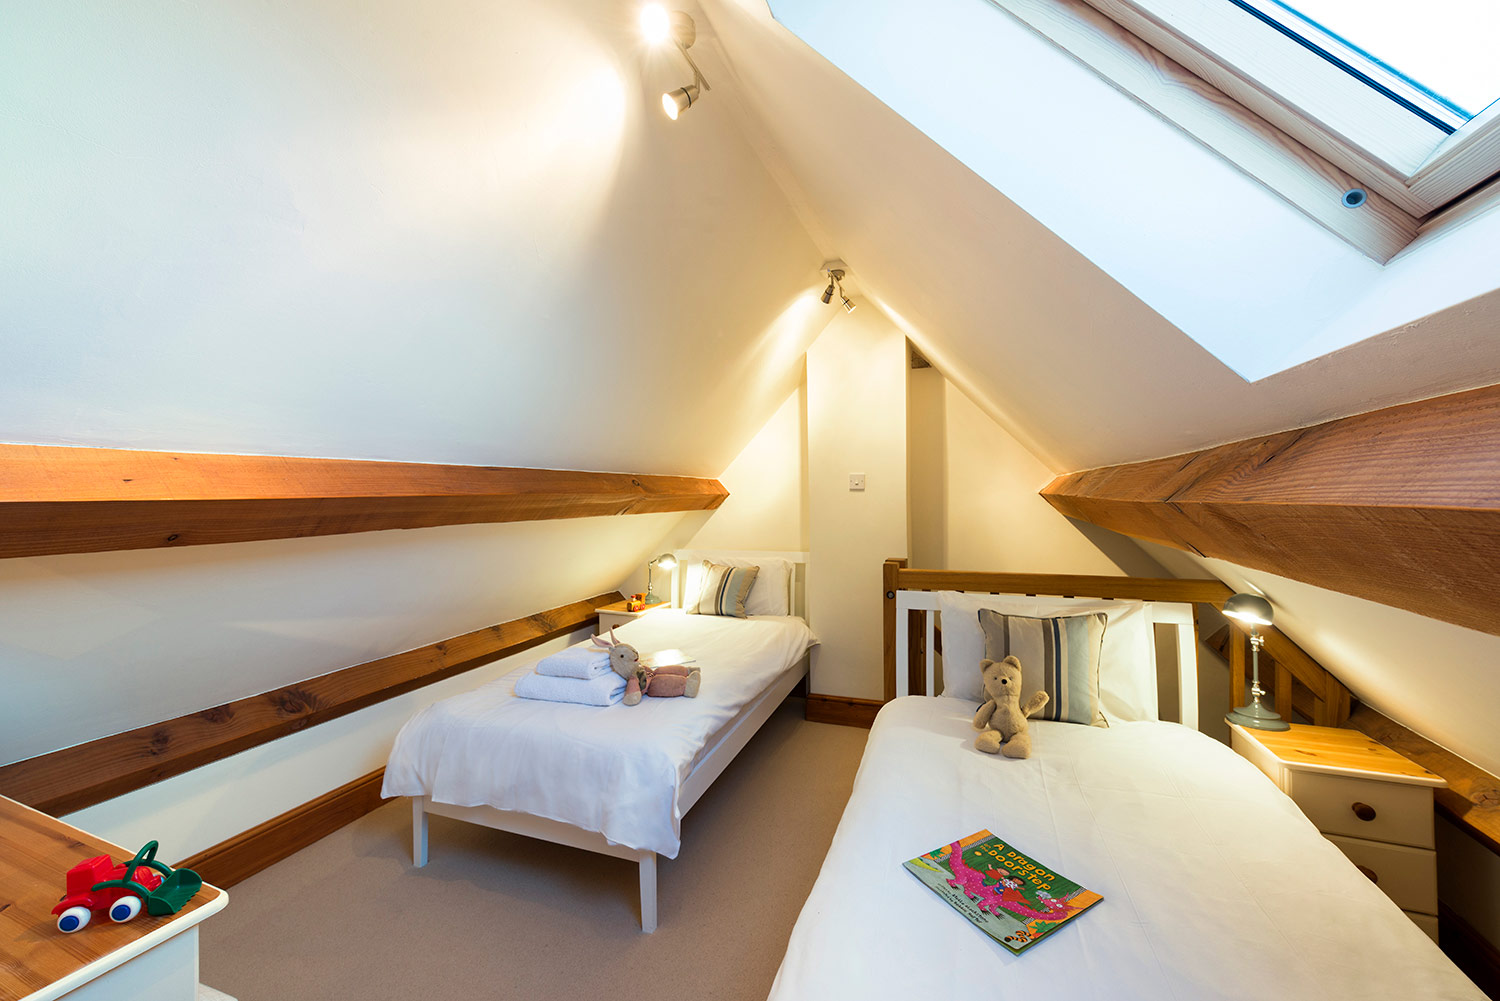 Family-friendly holiday cottages in Leicestershire | Upper Rectory Farm Cottages